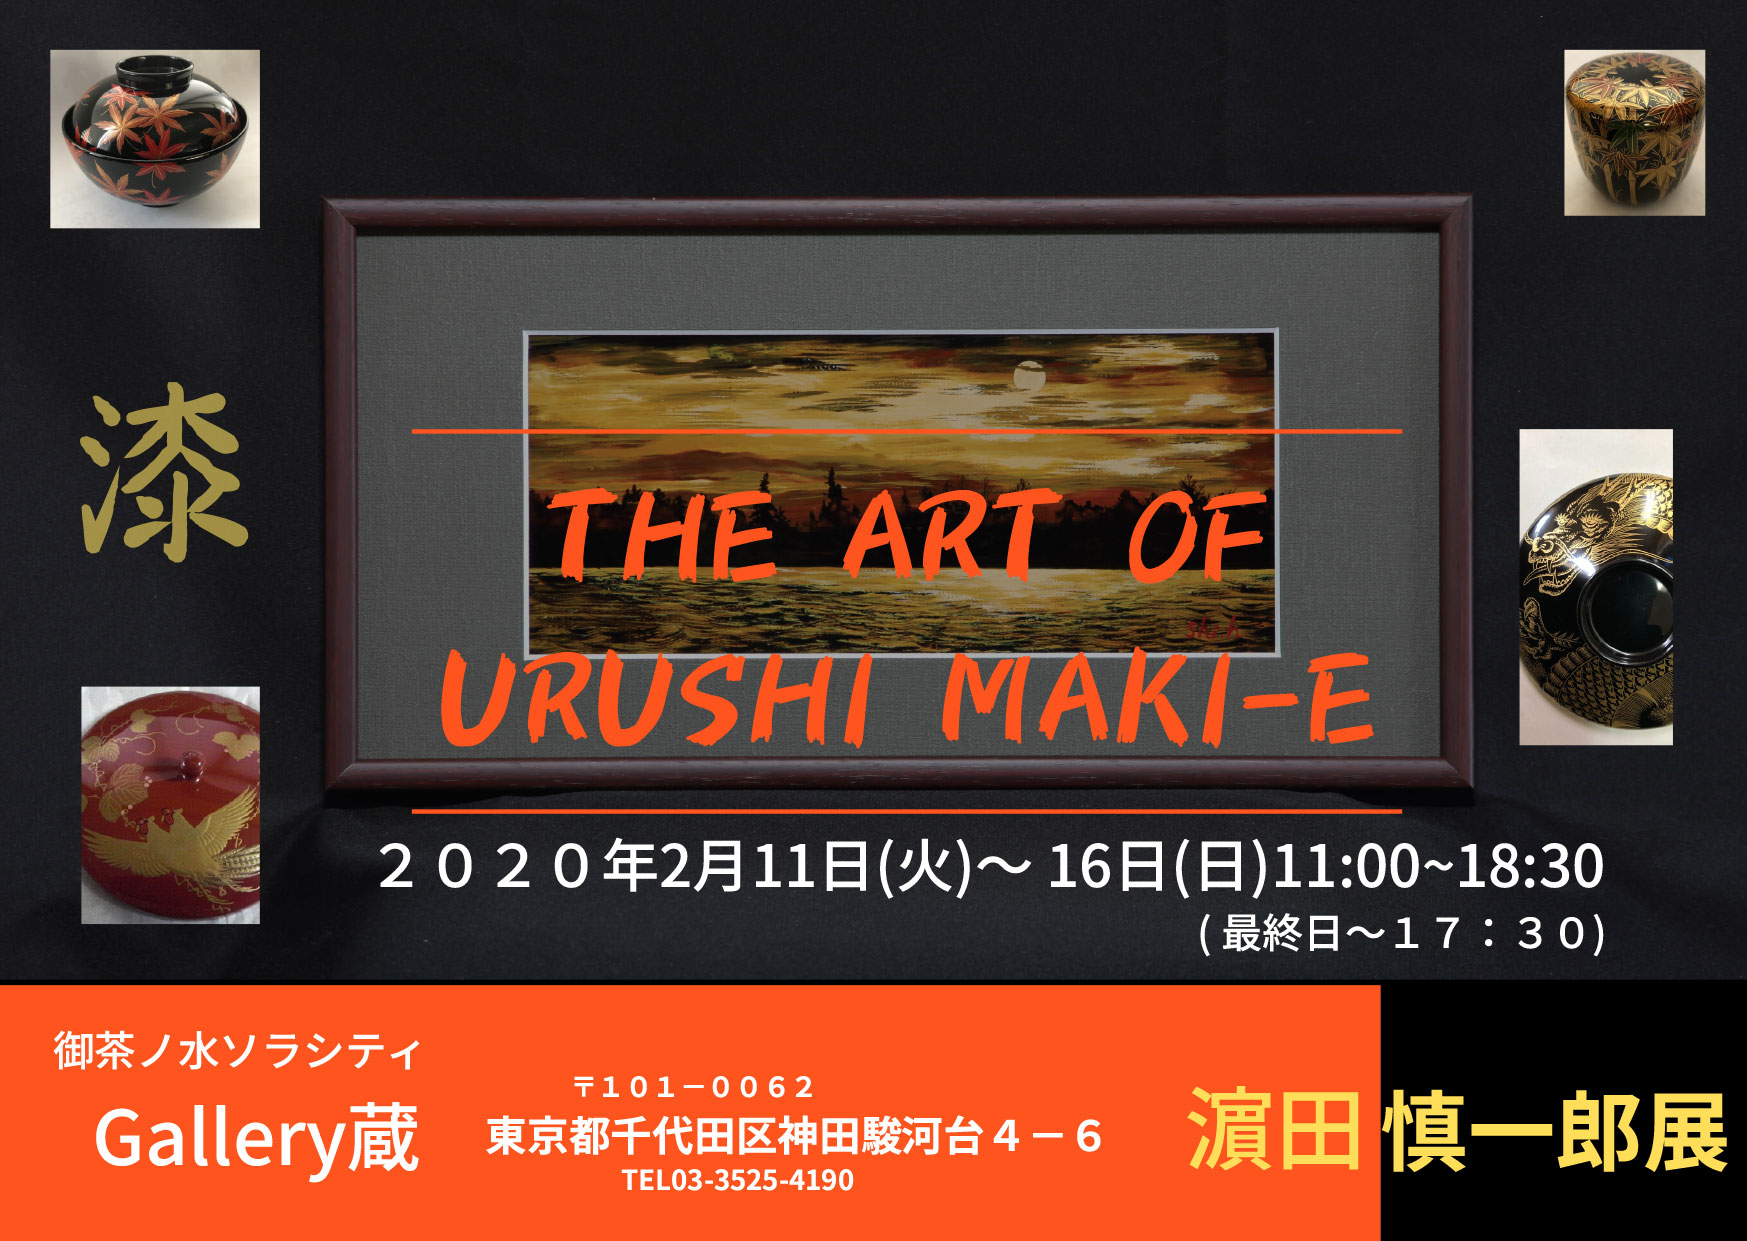 【終了】THE ART OF URUSHI MAKI-E